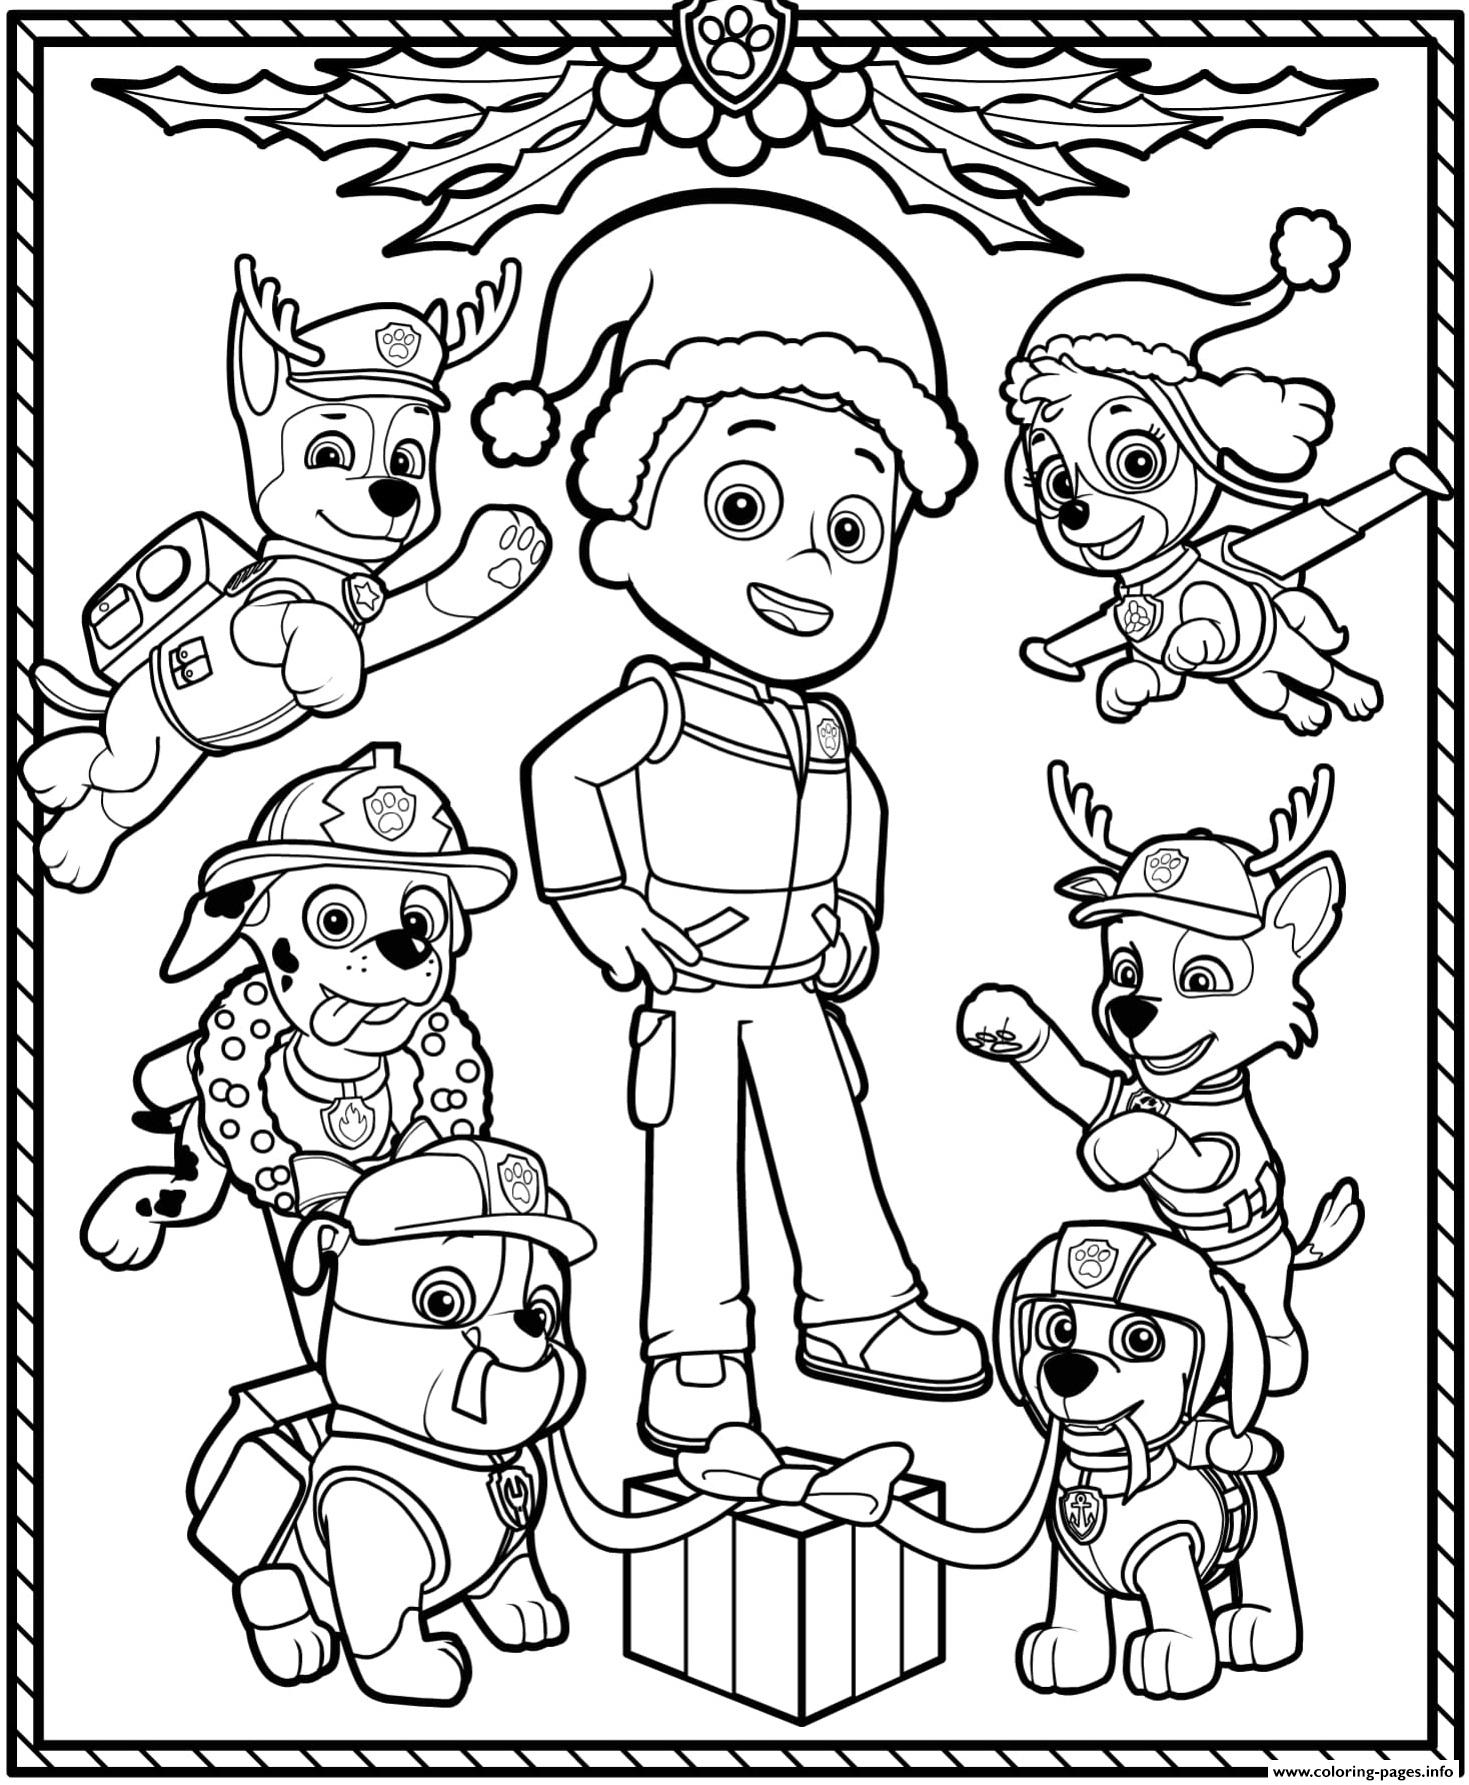 Christmas Paw Patrol Coloring Pages : christmas, patrol, coloring, pages, Patrol, Holiday, Christmas, Coloring, Pages, Printable